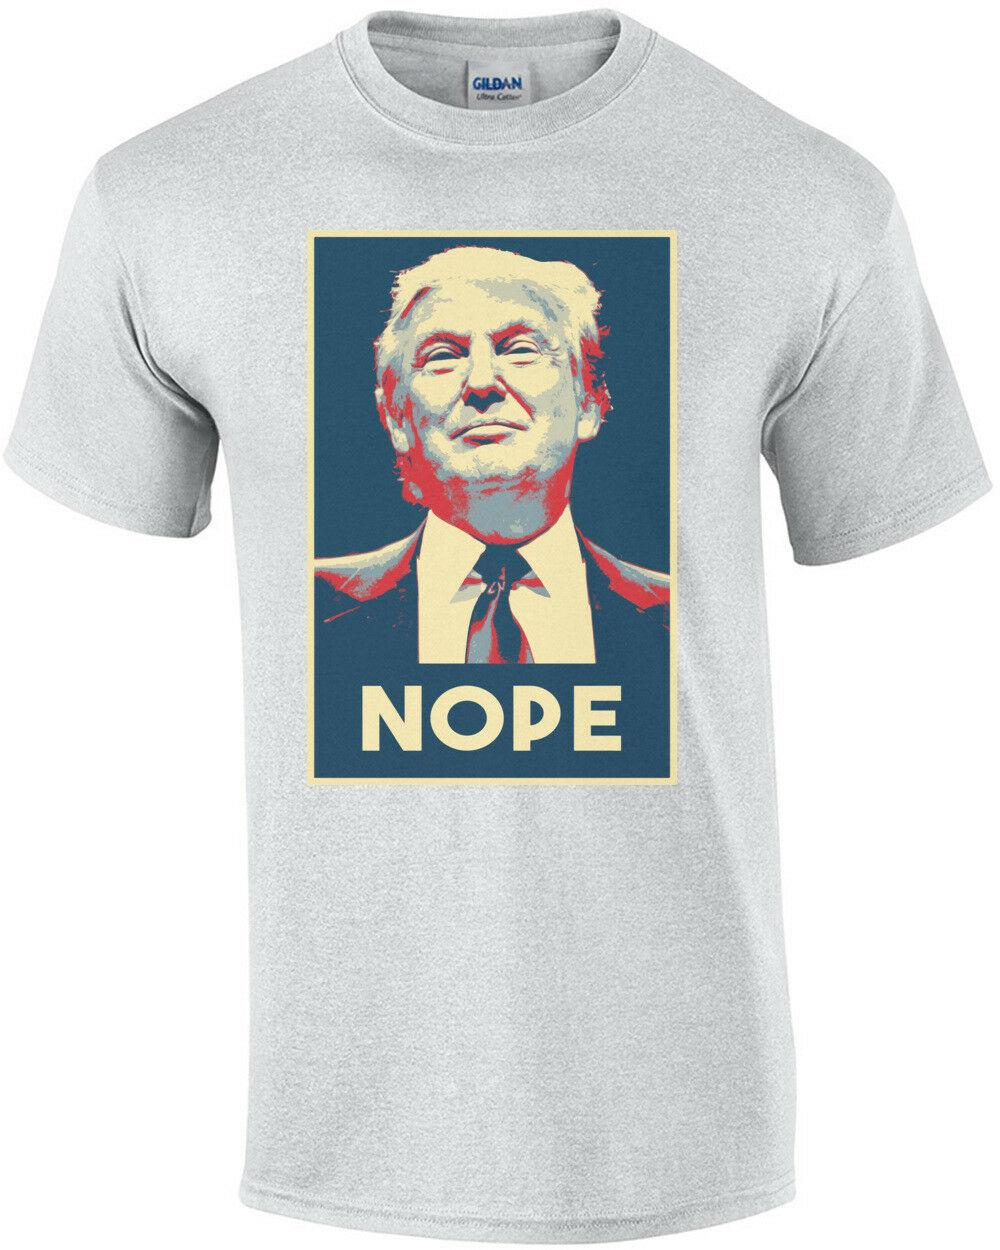 c4e53a5fb Trump NOPE For President Anti Trump Not My President Political T Shirt  Funny Unisex Casual Top Design 1 T Shirt Good T Shirt Sites From  Paystoretees, ...